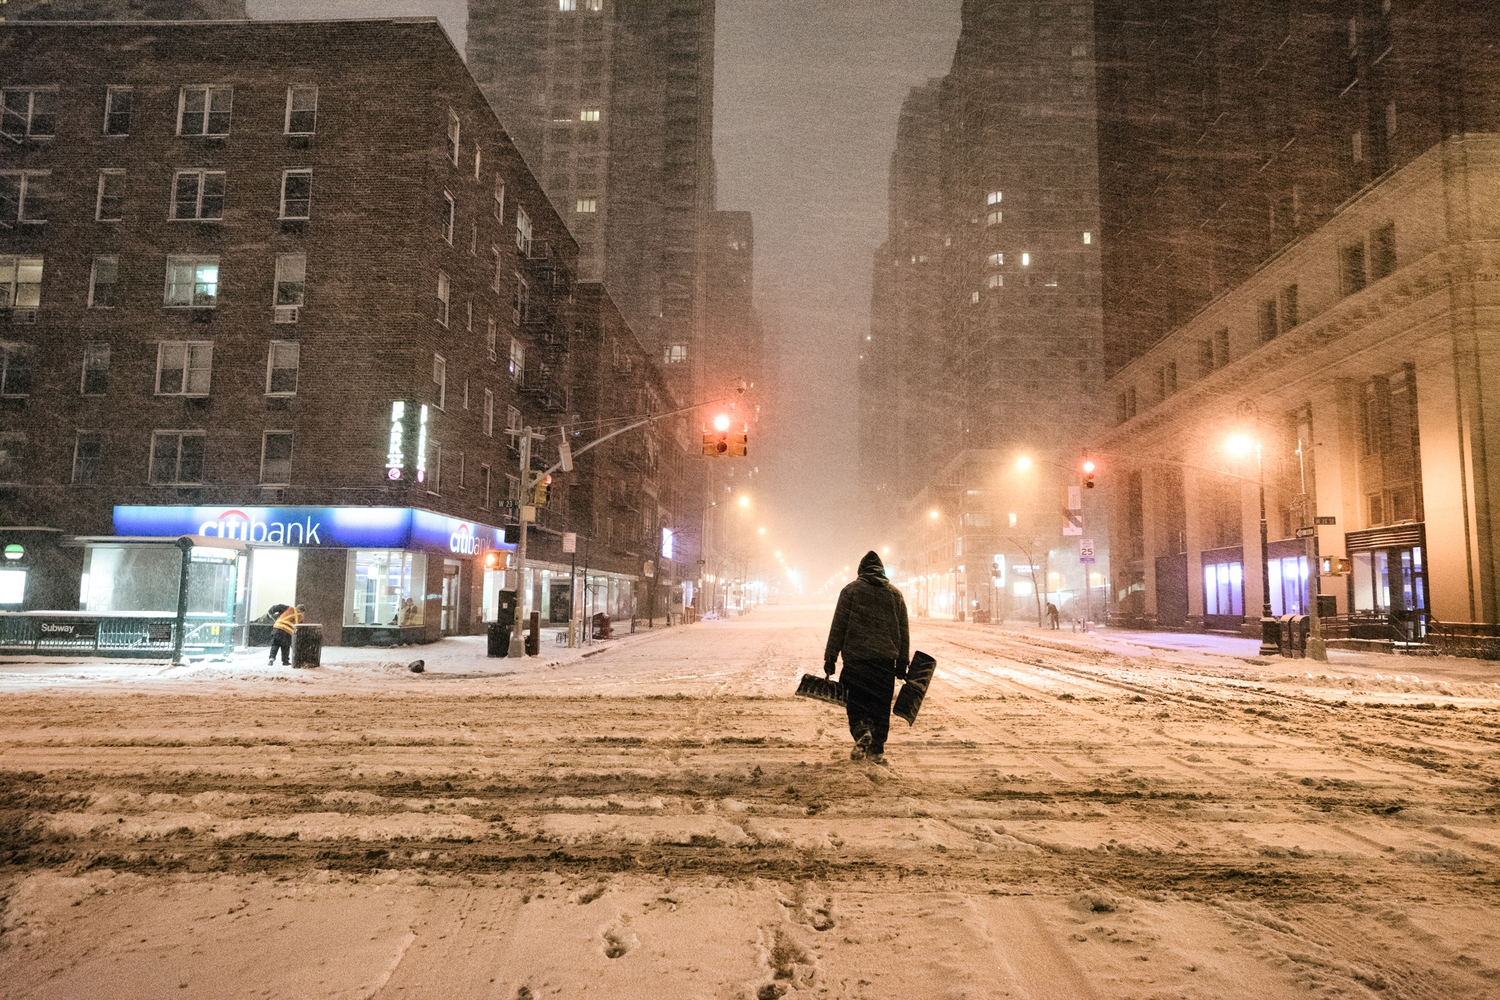 "New York City - Snow - Winter Storm Juno - Empty 6th Avenue | Juno: The first snowstorm of 2015 in New York City.  ---  (Note: My <a href=""http://www.amazon.com/gp/product/1440339589/ref=as_li_tl?ie=UTF8&camp=1789&creative=9325&creativeASIN=1440339589&linkCode=as2&tag=nyththle0e-20&linkId=ER6GYT5FRYNMEPLF"" rel=""nofollow"">New York photography book</a> released worldwide in stores/online recently and has photos similar to this  [full info below])  ---  I have been photographing New York City during snowstorms at night for the past 5 years. When it comes to experiencing <a href=""http://nythroughthelens.com/tagged/snow"" rel=""nofollow"">New York City in the snow</a>, I relish the challenge. The more gusty, snowy, and brutal the storm, the more of a chance that I will be out in it traipsing around New York City with my cameras in tow.  When I heard that the MTA was suspending all transit service (and most vehicles) at 11 pm, I made the decision to take the train up to the Upper East Side prior to 11 pm to deposit myself up there with the intention of walking from the Upper East Side to Times Square and then walking the several miles back to the Lower East Side (whew!!).  The streets were eerily empty.  Emptier than they are usually at night during snowfall. Since there was a ban on all vehicles aside from snow plows and emergency services, there were practically no cars at all on the streets. Even taxis were banned from the streets!  I walked in the middle of avenues and streets that are usually teeming with cars.  There was an eerie sense of calm.  It was magical.   ---  This is part of a post that I posted to my NYC photography blog. If you are curious enough to look at the photos there, here is the link to the post:  <a href=""http://nythroughthelens.com/post/109291619025/new-york-city-snow-winter-storm-juno-i"" rel=""nofollow"">New York City - Winter Storm Juno</a>   ----  * As mentioned above - My New York City coffee table book that released in stores/online worldwide recently.   Tons of information about my <a href=""http://www.amazon.com/gp/product/1440339589/ref=as_li_tl?ie=UTF8&camp=1789&creative=9325&creativeASIN=1440339589&linkCode=as2&tag=nyththle0e-20&linkId=ER6GYT5FRYNMEPLF"" rel=""nofollow"">New York photography book</a> with sample pages (including where to order and what stores are carrying it) here:  <a href=""http://nythroughthelens.com/post/92873566010/ny-through-the-lens-the-book-i-am-super"" rel=""nofollow"">NY Through The Lens: A New York Coffee Table Book</a> ---   View my New York City photography at my website <a href=""http://nythroughthelens.com/"" rel=""nofollow"">NY Through The Lens</a>.  View my Travel photography at my travel blog: <a href=""http://travelinglens.me/"" rel=""nofollow"">Traveling Lens</a>.  Interested in my work and have questions about PR and media? Check out my:  <a href=""http://nythroughthelens.com/about"" rel=""nofollow"">About Page</a> 